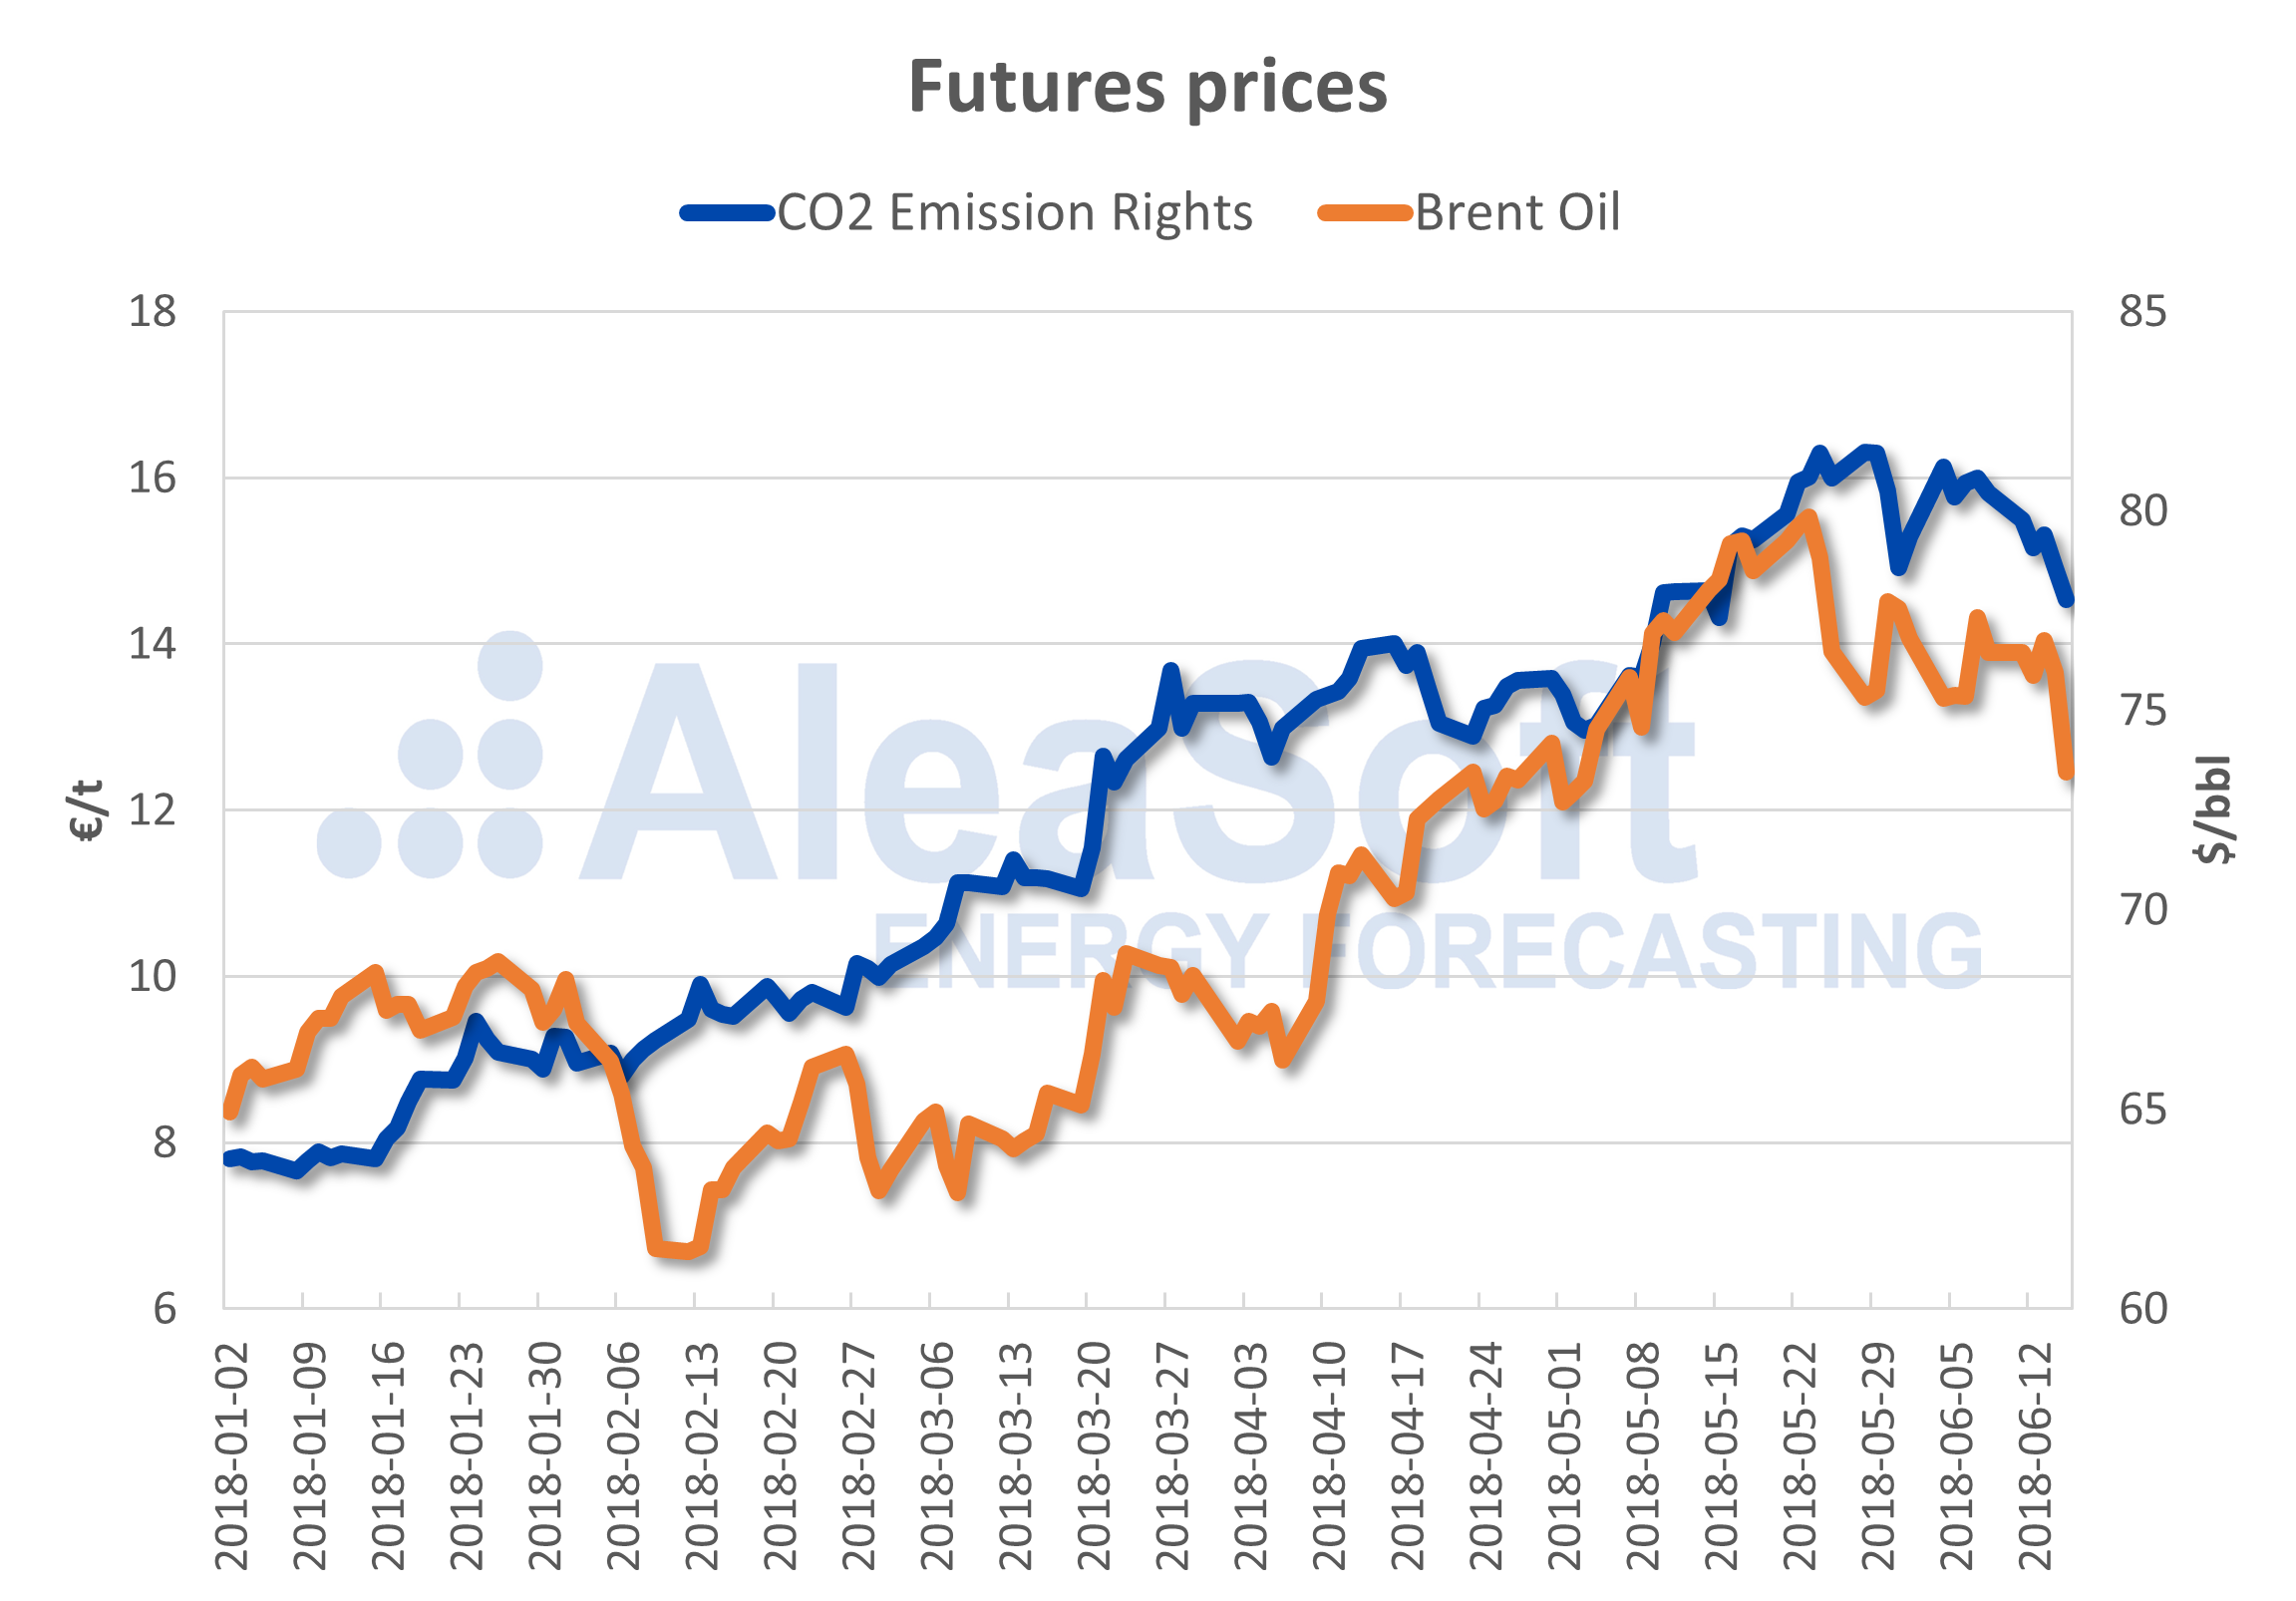 AleaSoft - Futures prices